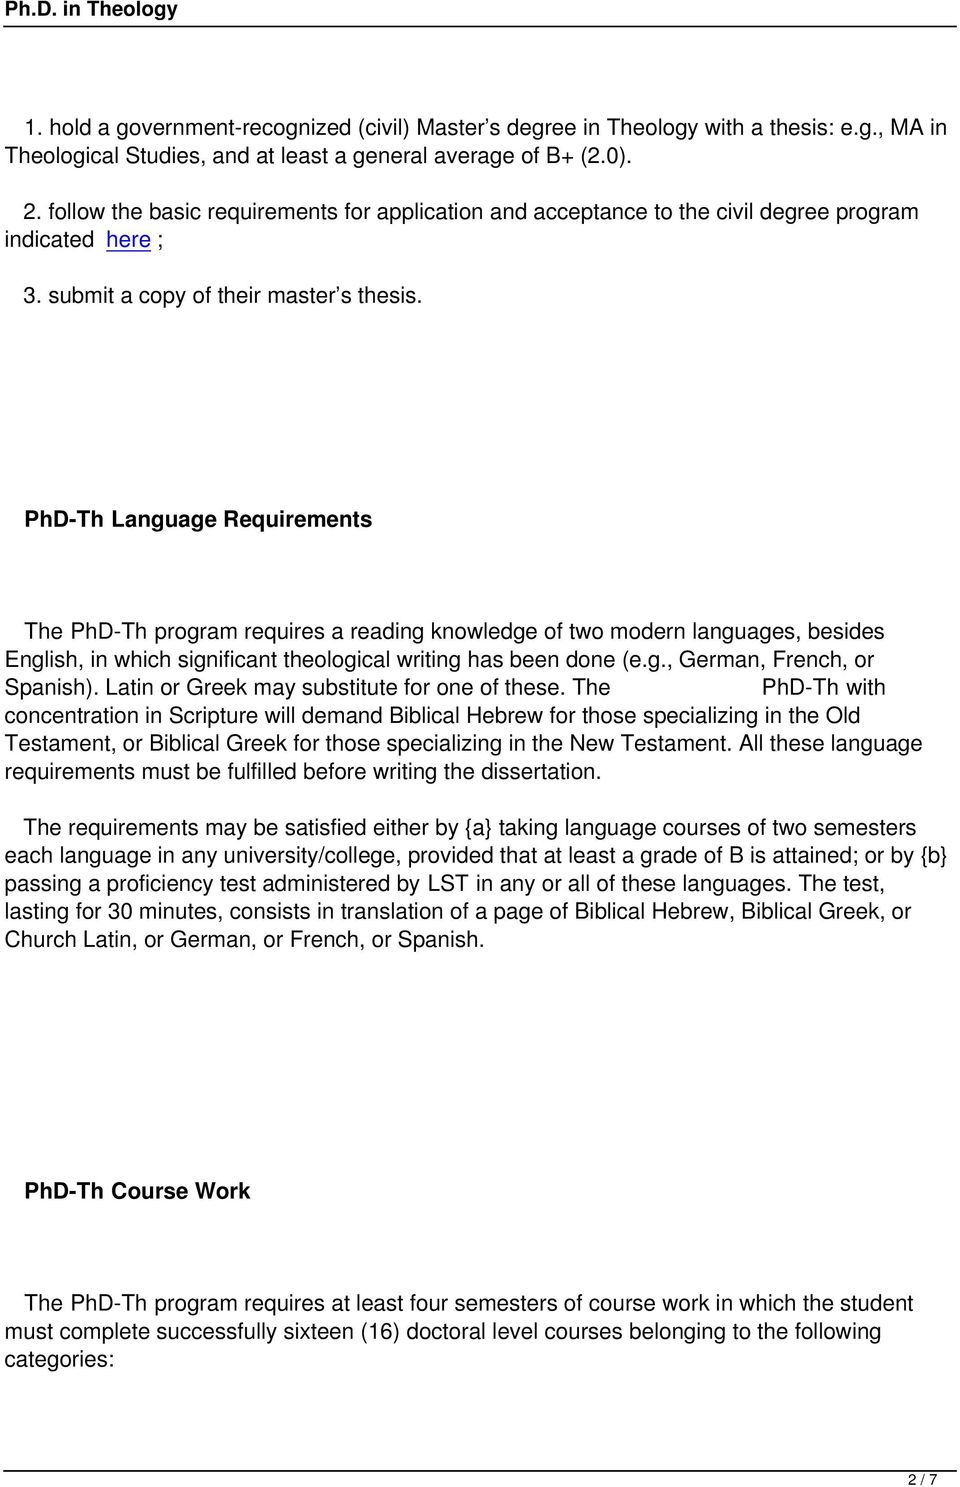 PhD-Th Language Requirements The PhD-Th program requires a reading knowledge of two modern languages, besides English, in which significant theological writing has been done (e.g., German, French, or Spanish).